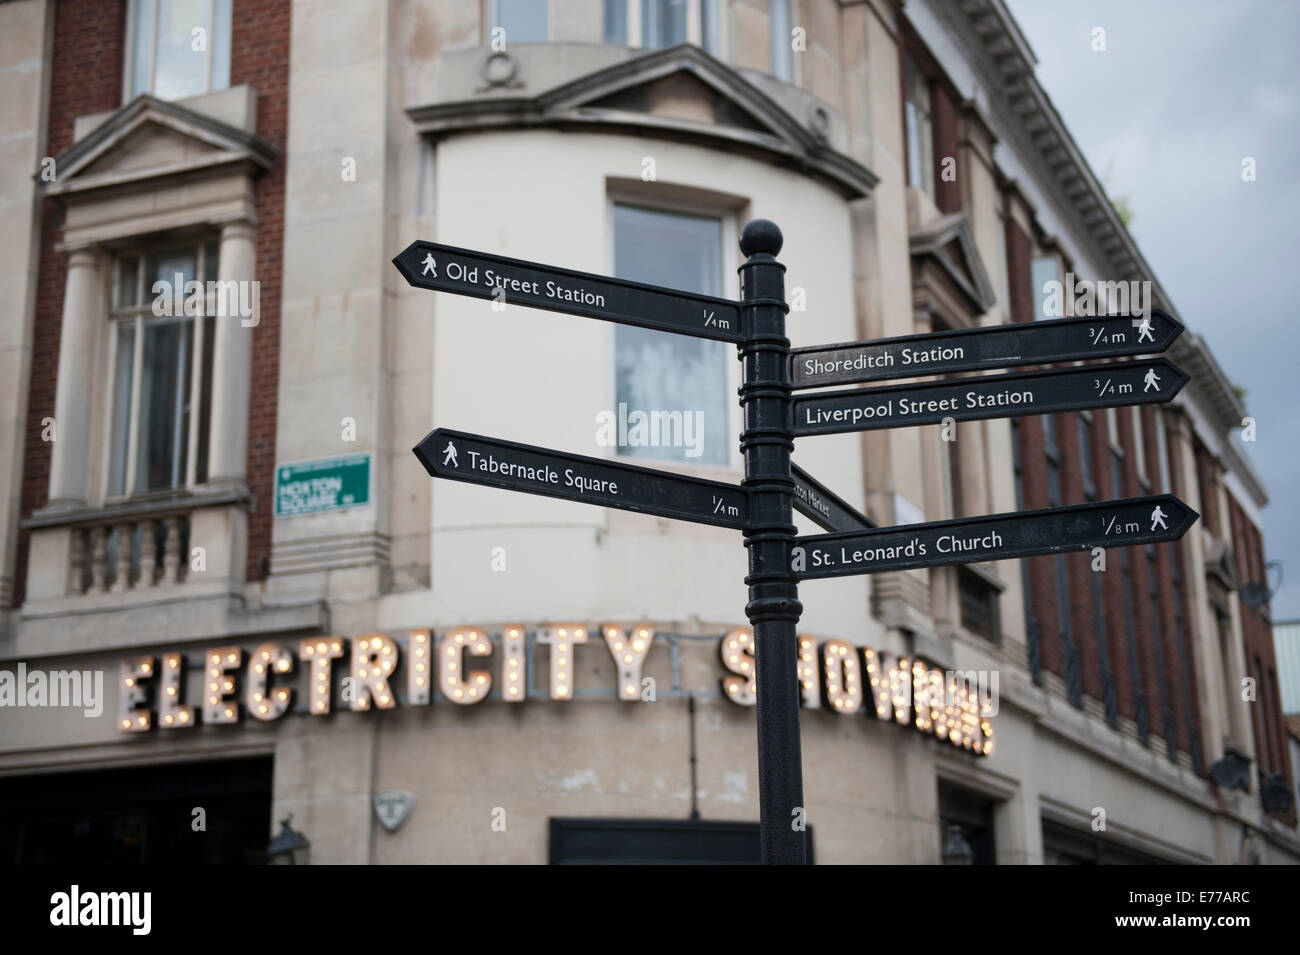 Electricity Showrooms on the corner in Shoreditch Hoxton East End of London - Stock Image